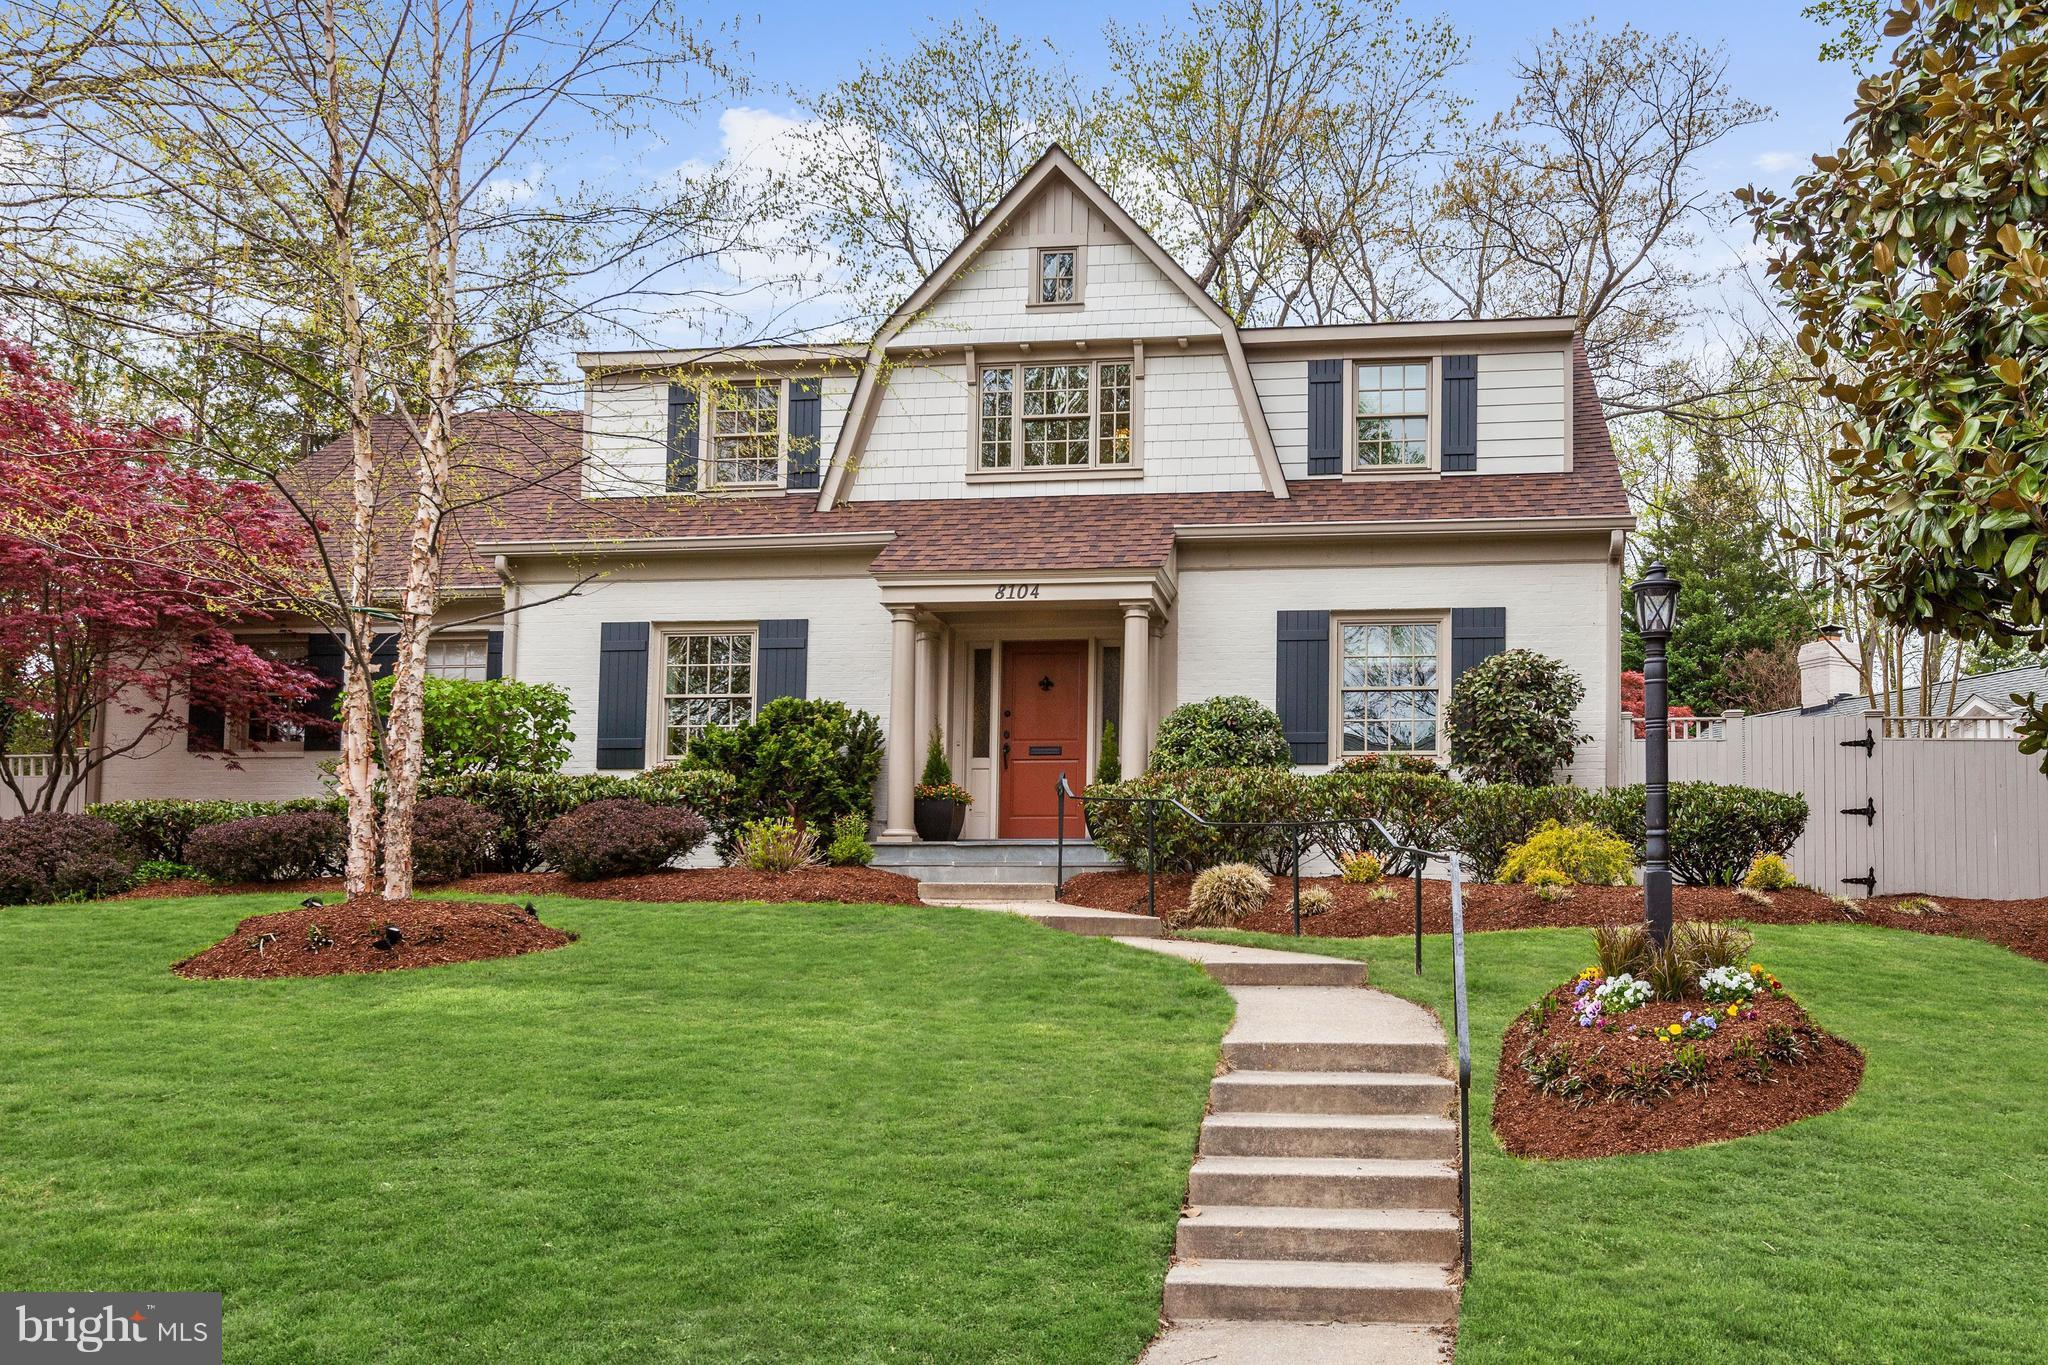 8104 KERRY LANE, Chevy Chase, MD 20815